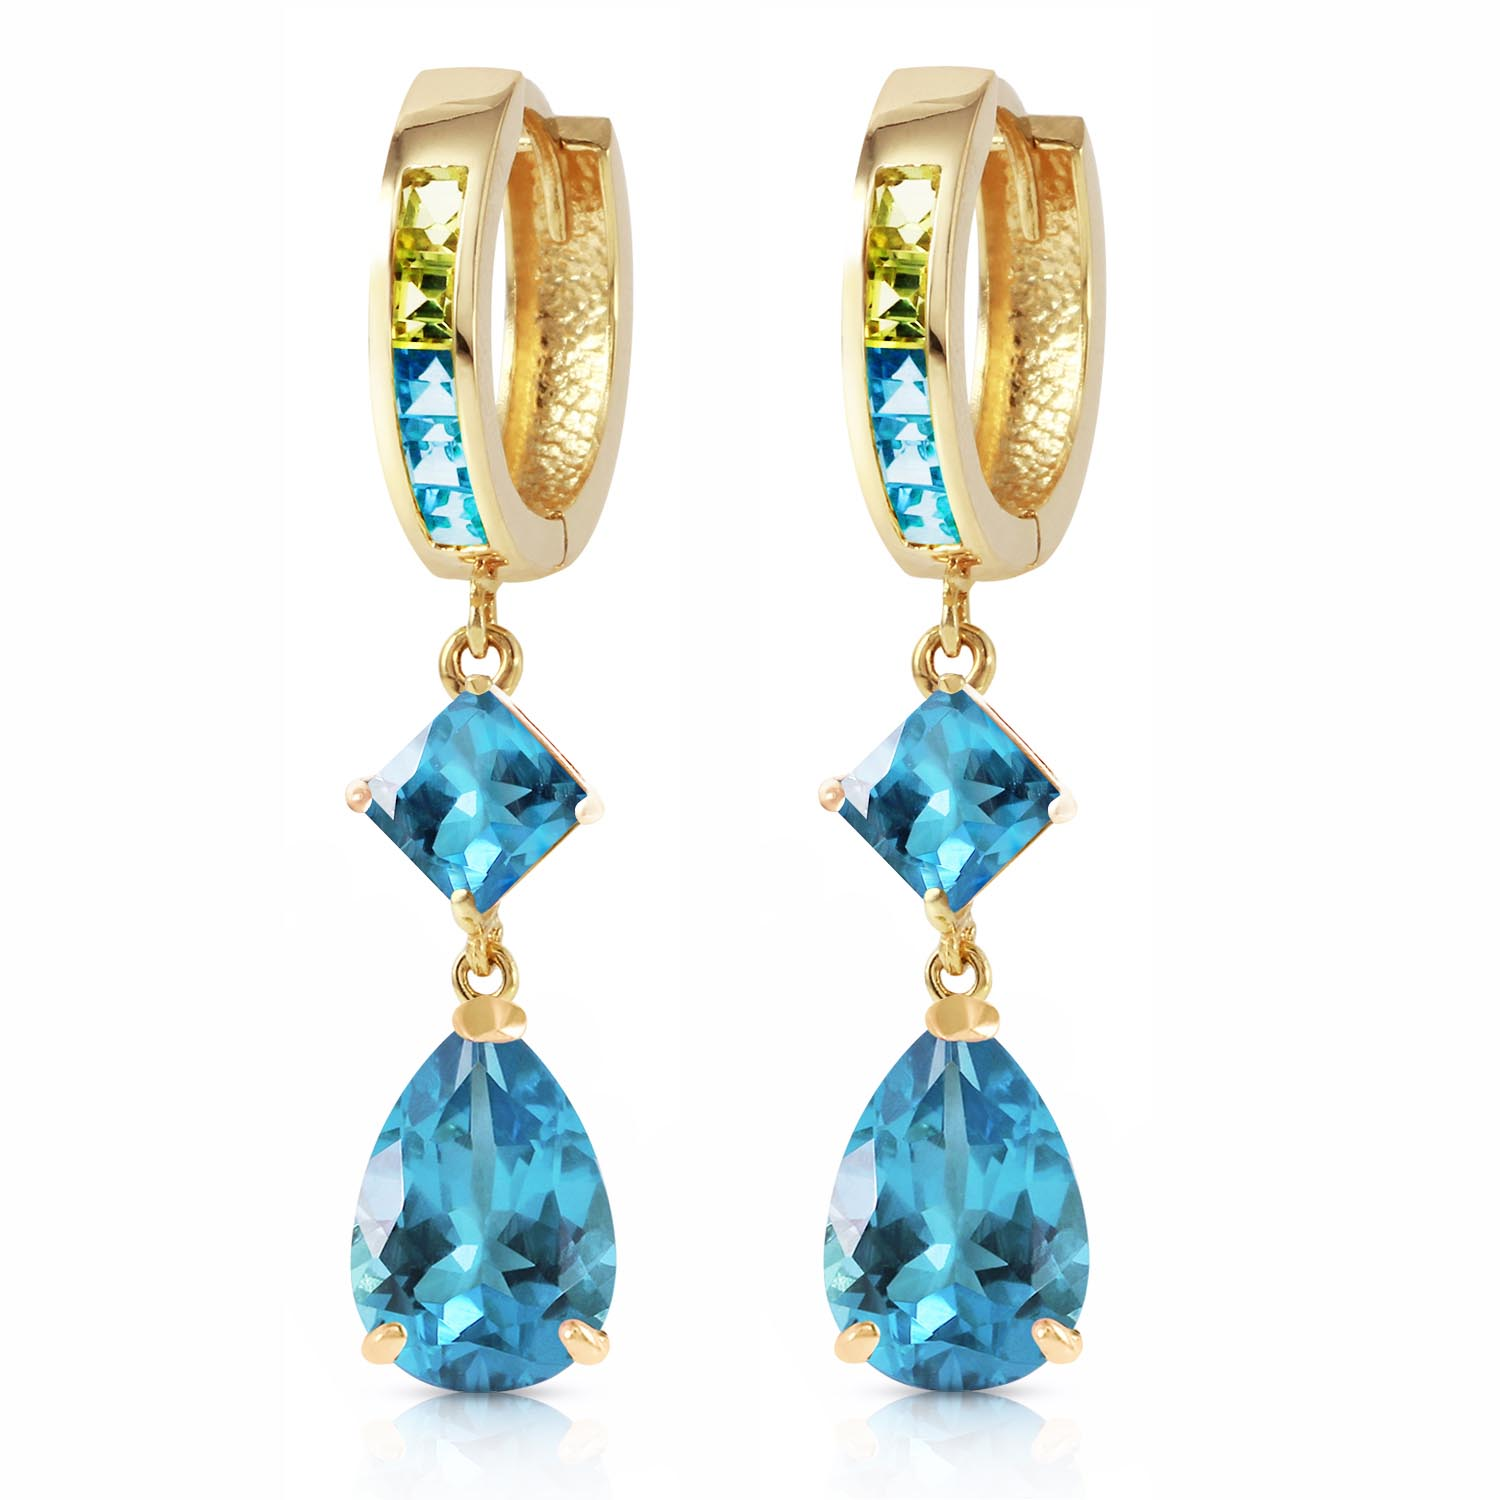 Blue Topaz and Peridot Huggie Earrings 5.37ctw in 9ct Gold